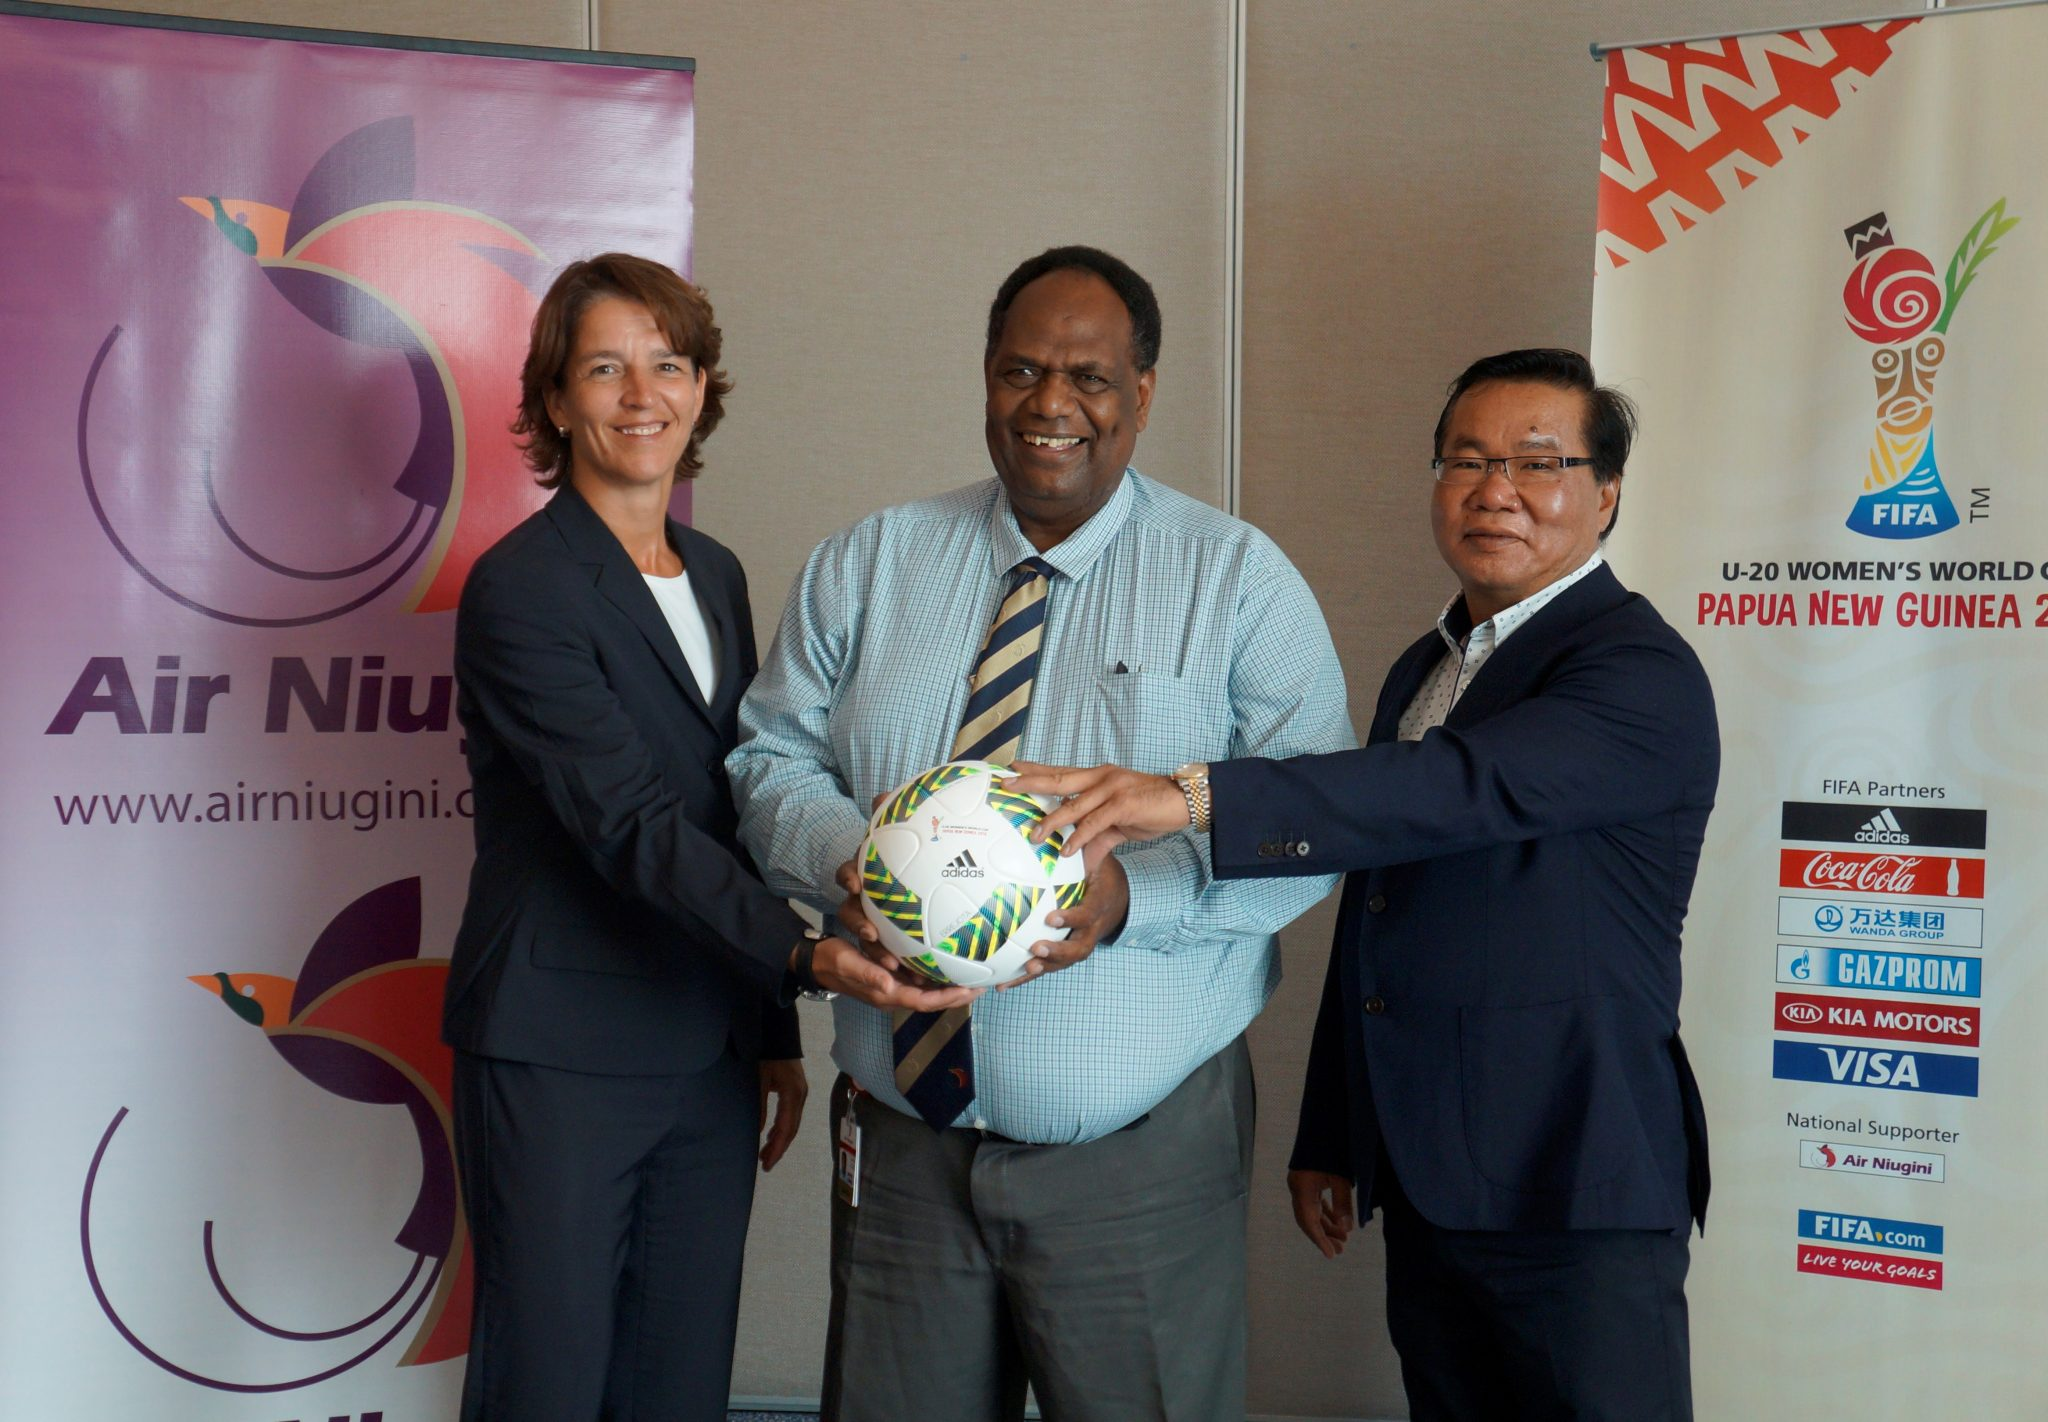 Air Niugini supports FIFA U-20 Women's World Cup, Papua New Guinea 2016